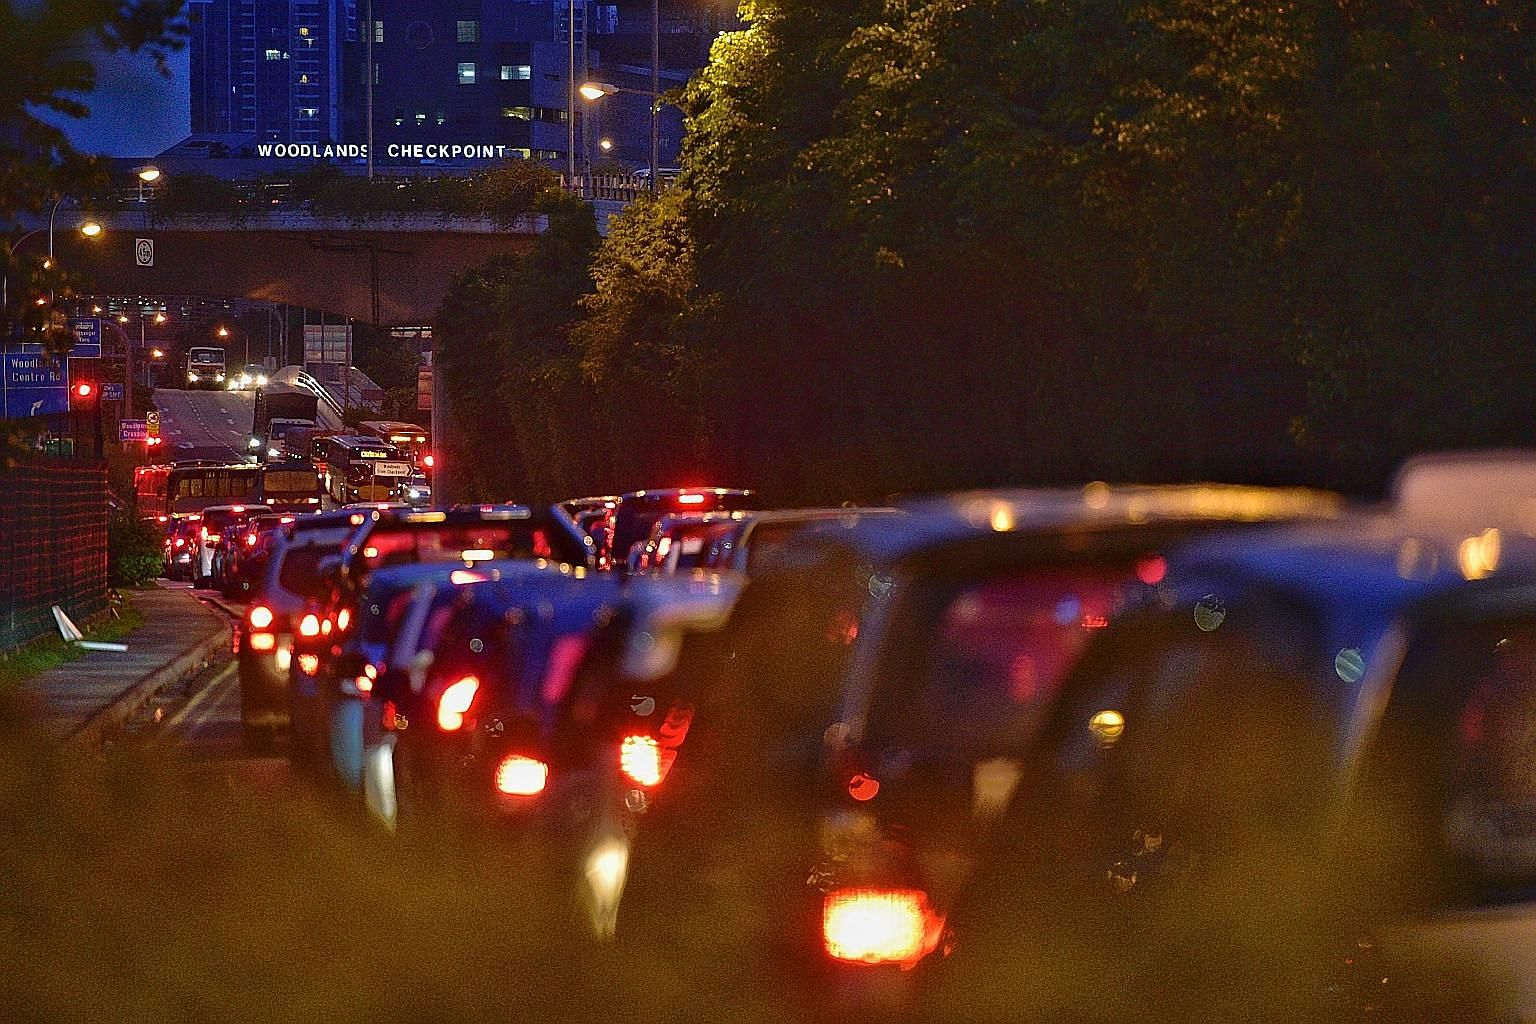 Diesel-powered Singapore vehicles leaving via the land checkpoints will be required to have at least three-quarters of their tanks filled. Drivers who do not comply could face a composition fine of up to $500, or be prosecuted in court.